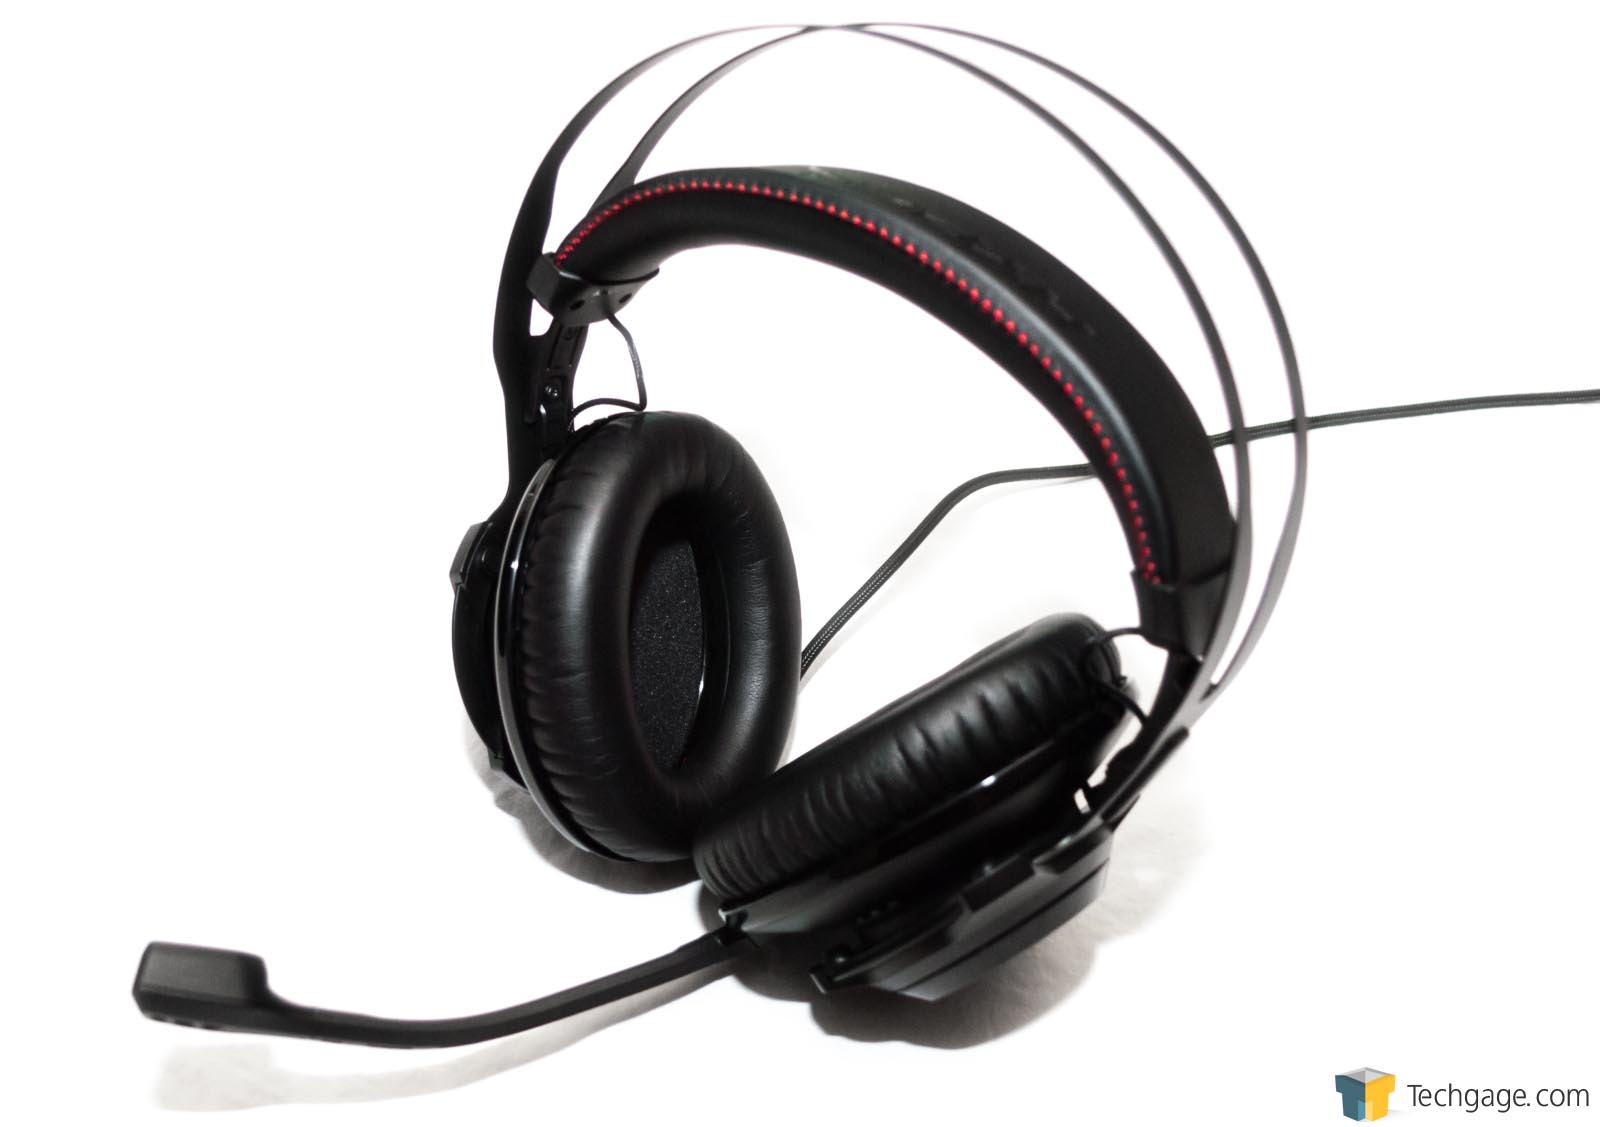 Hyperx Chair Comfort And Style Meet High Fidelity A Review Of The